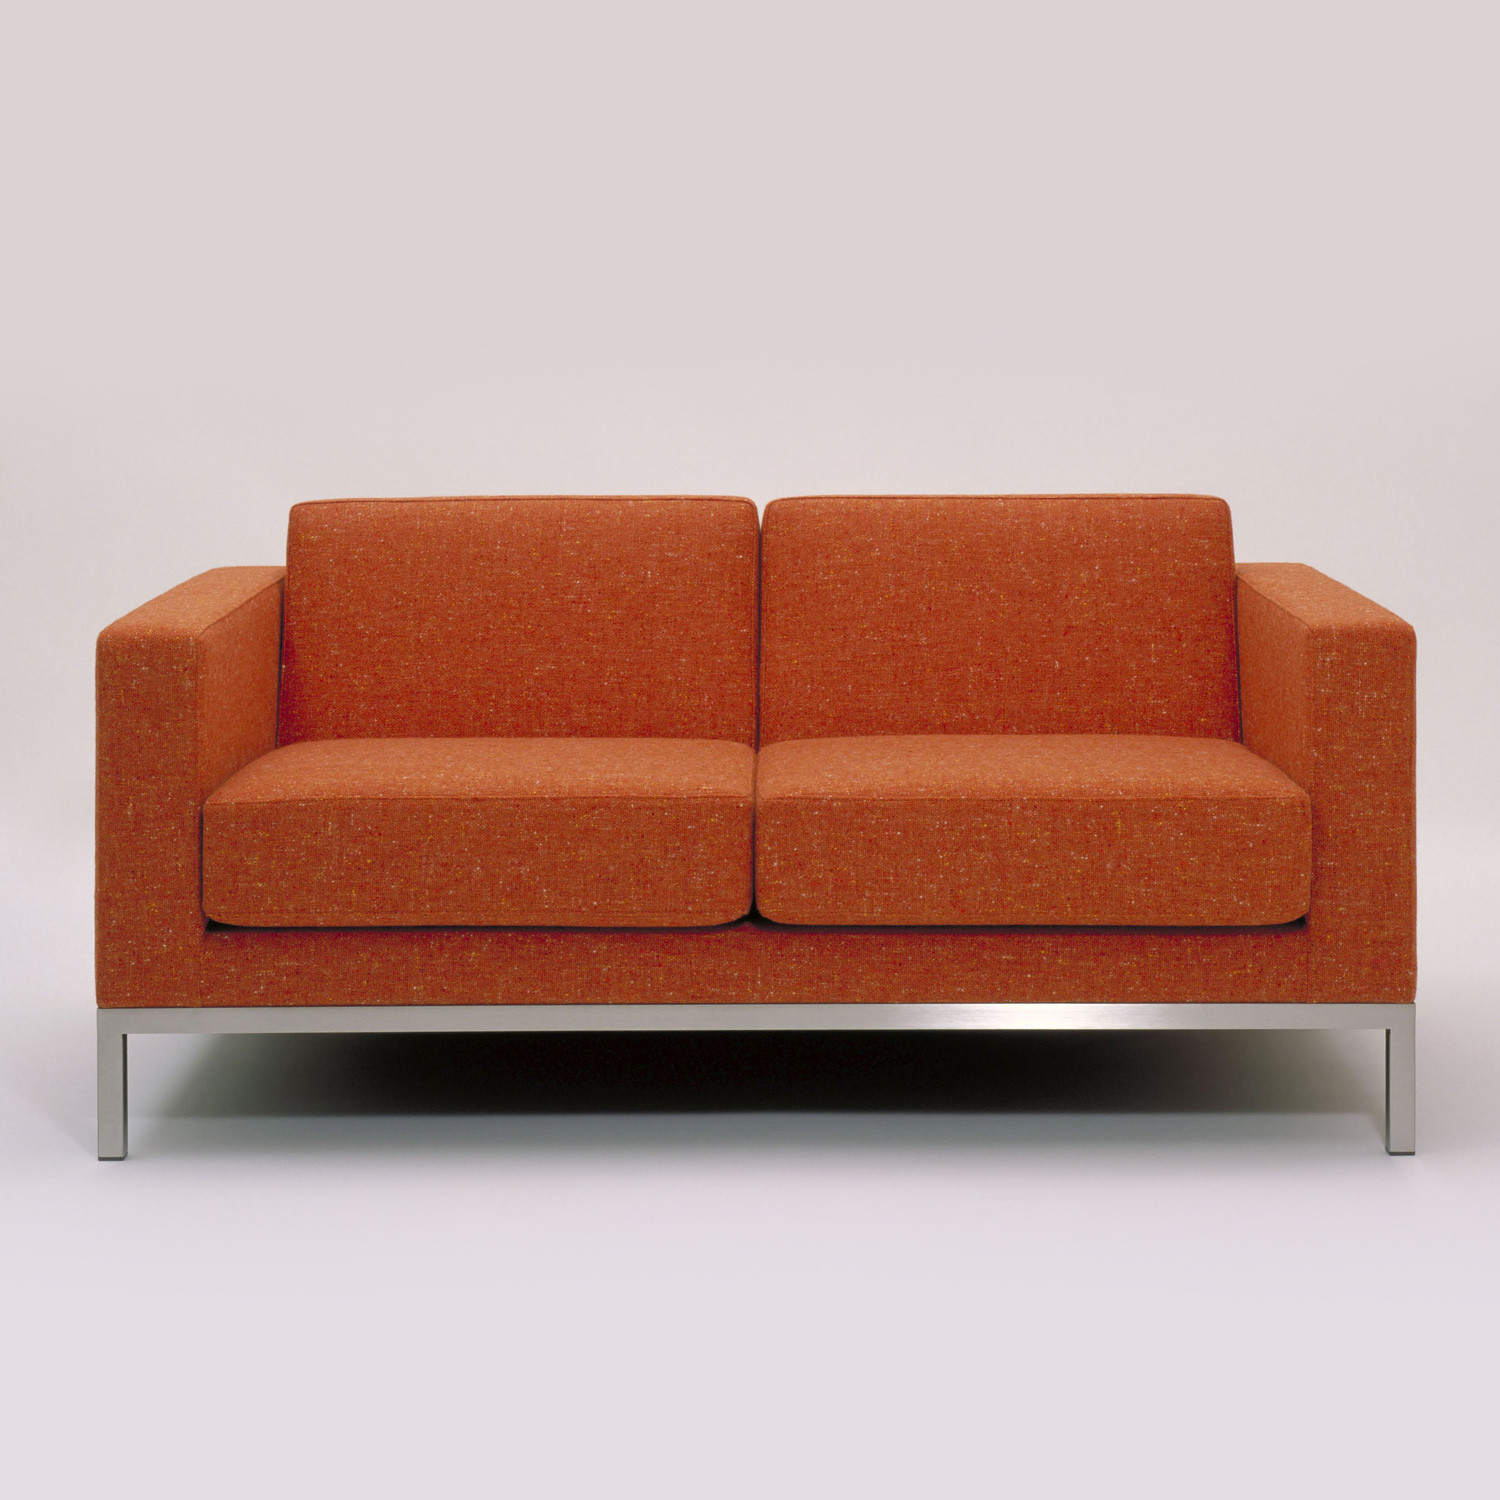 Hm26 Two-Seayet Sofa in fabric upholstery